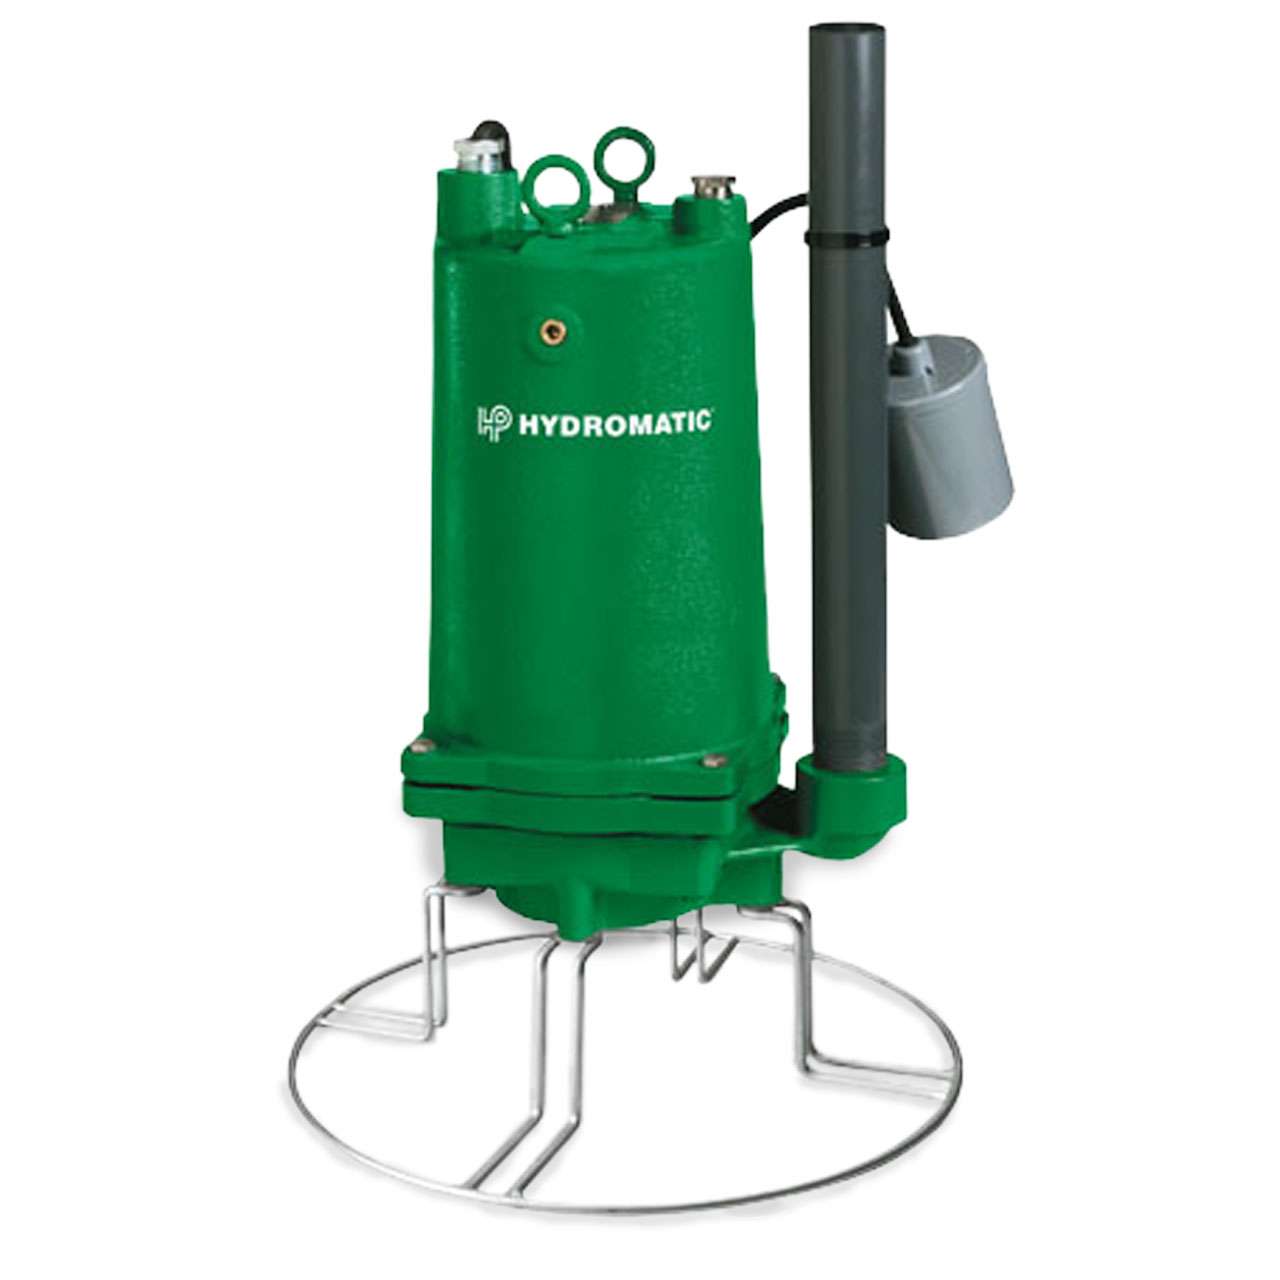 Hydromatic Pump Hydromatic Hpgr200m2 2 Submersible